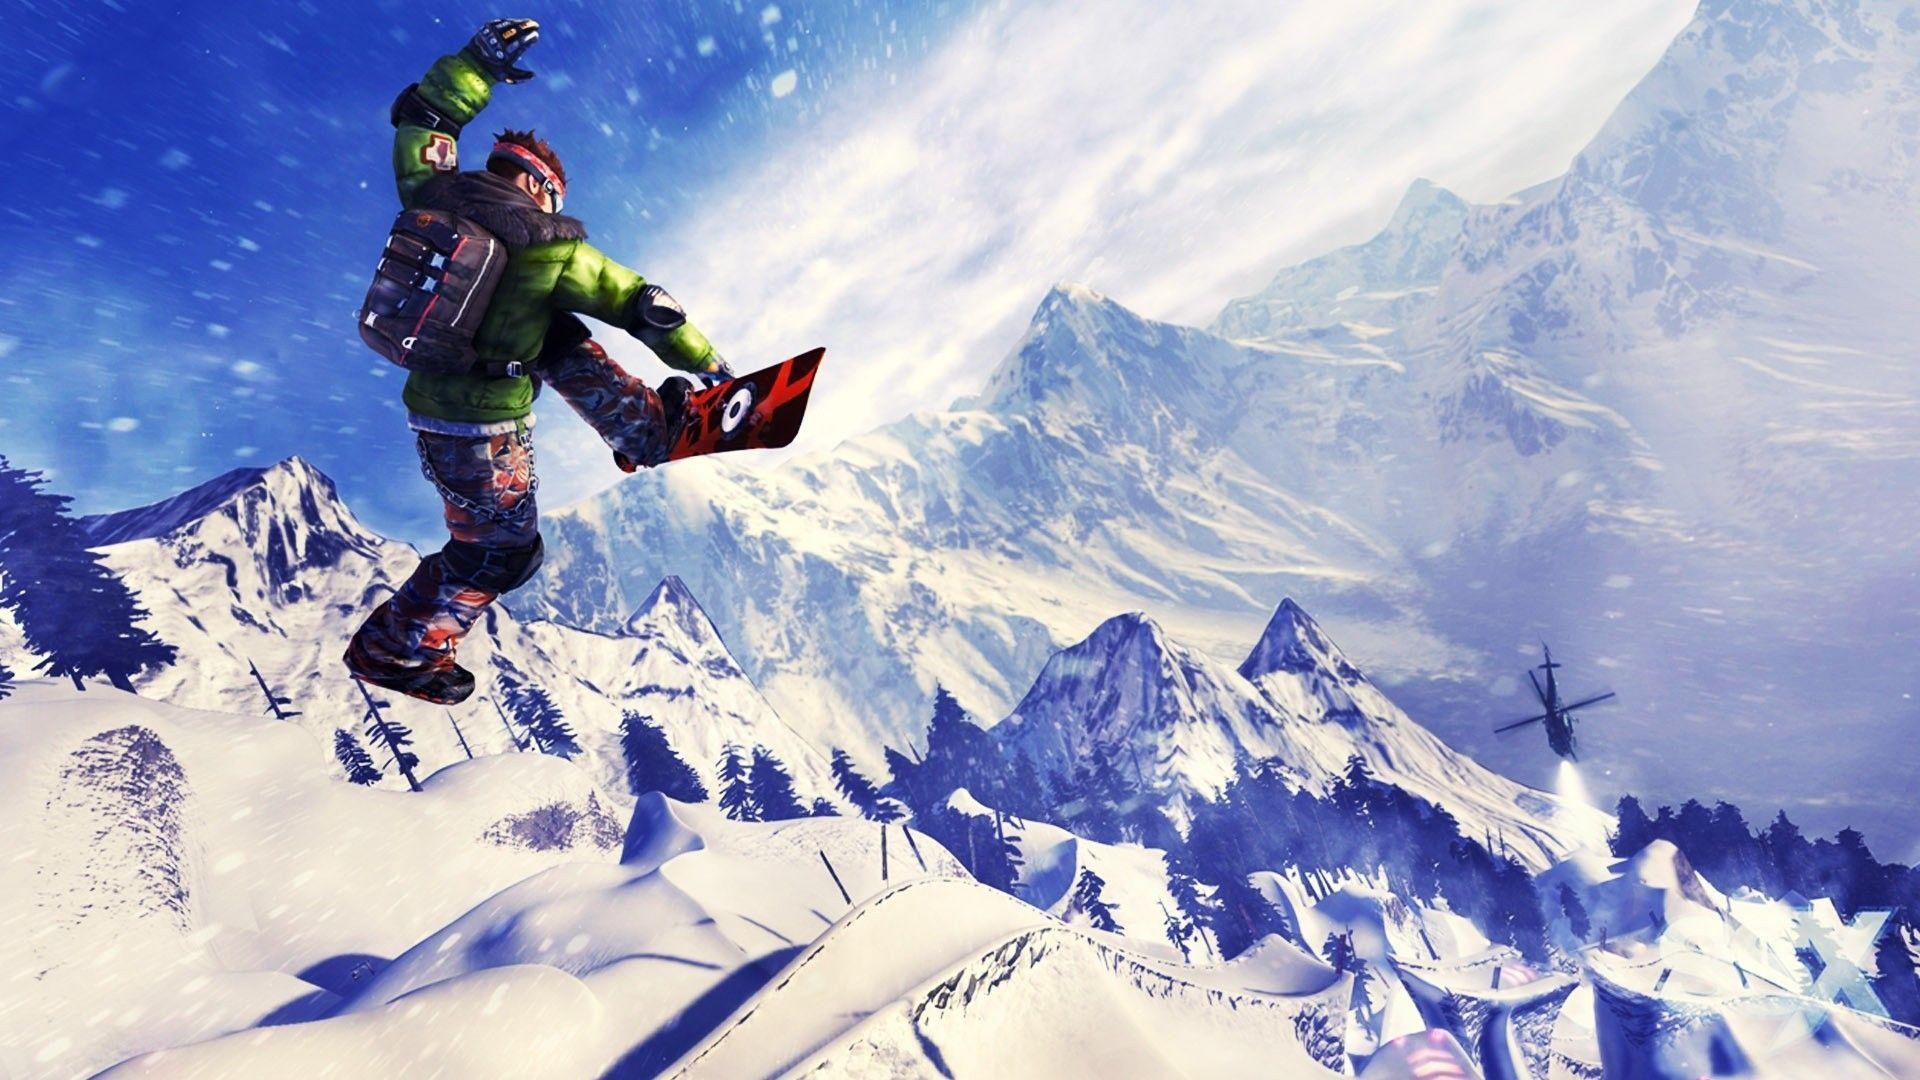 Snowboard wallpapers hd